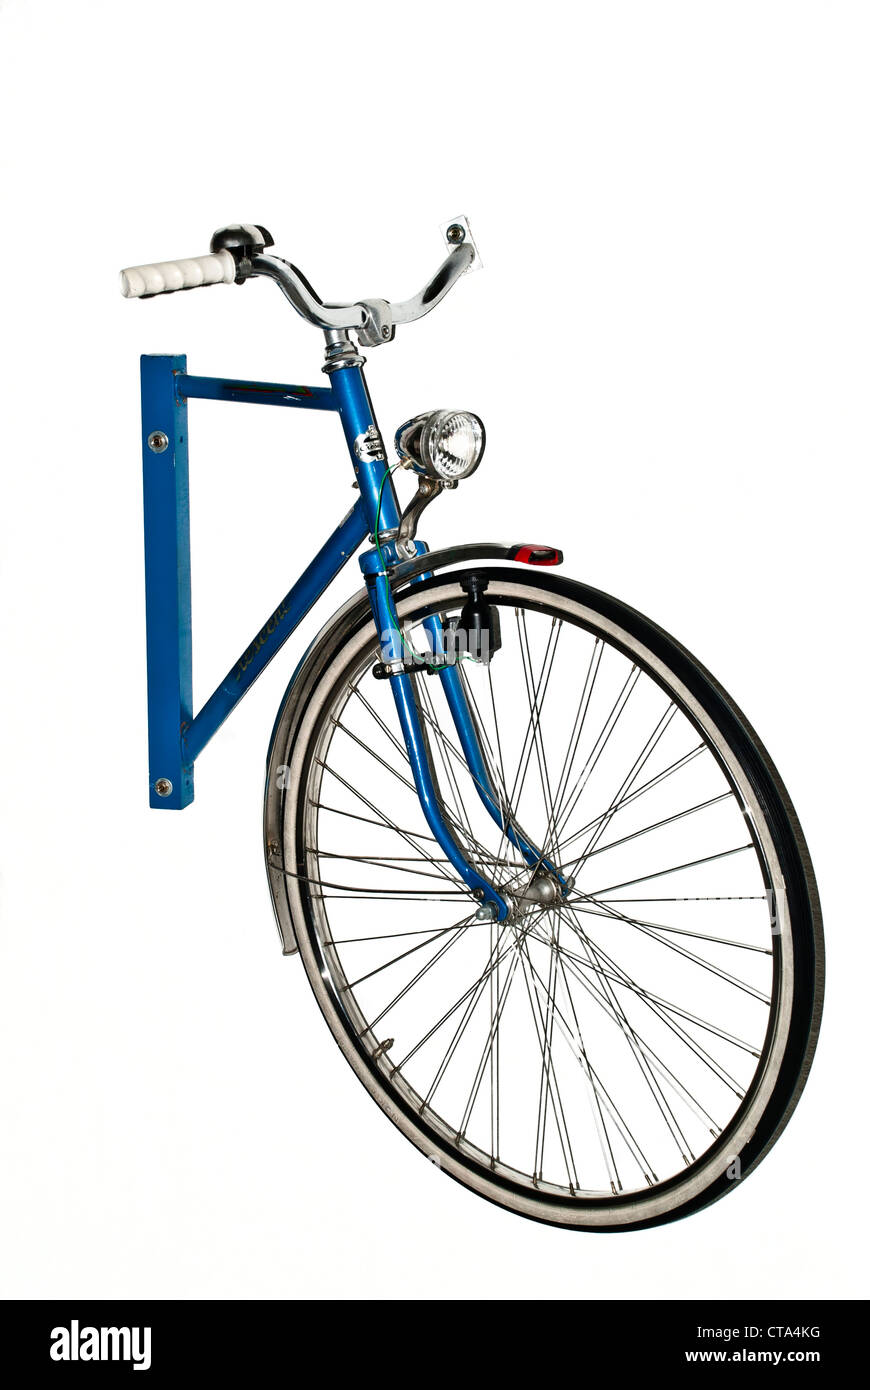 Blue half bicycle on the wall - Stock Image